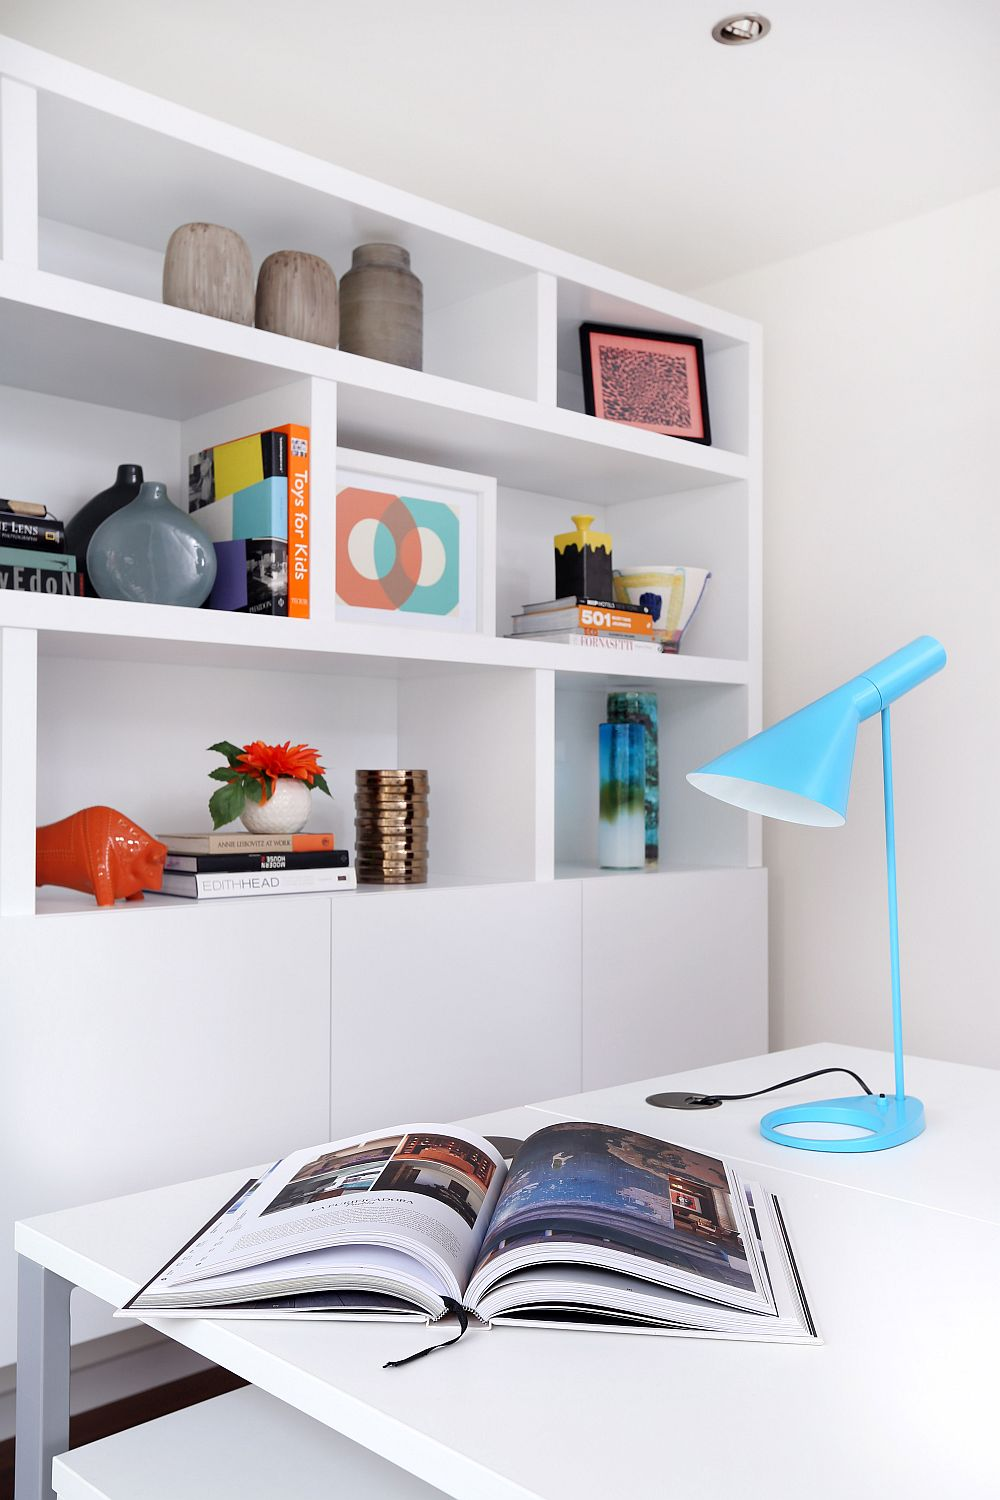 Turquoise Arne Jacobsen AJ table lamp on the work table